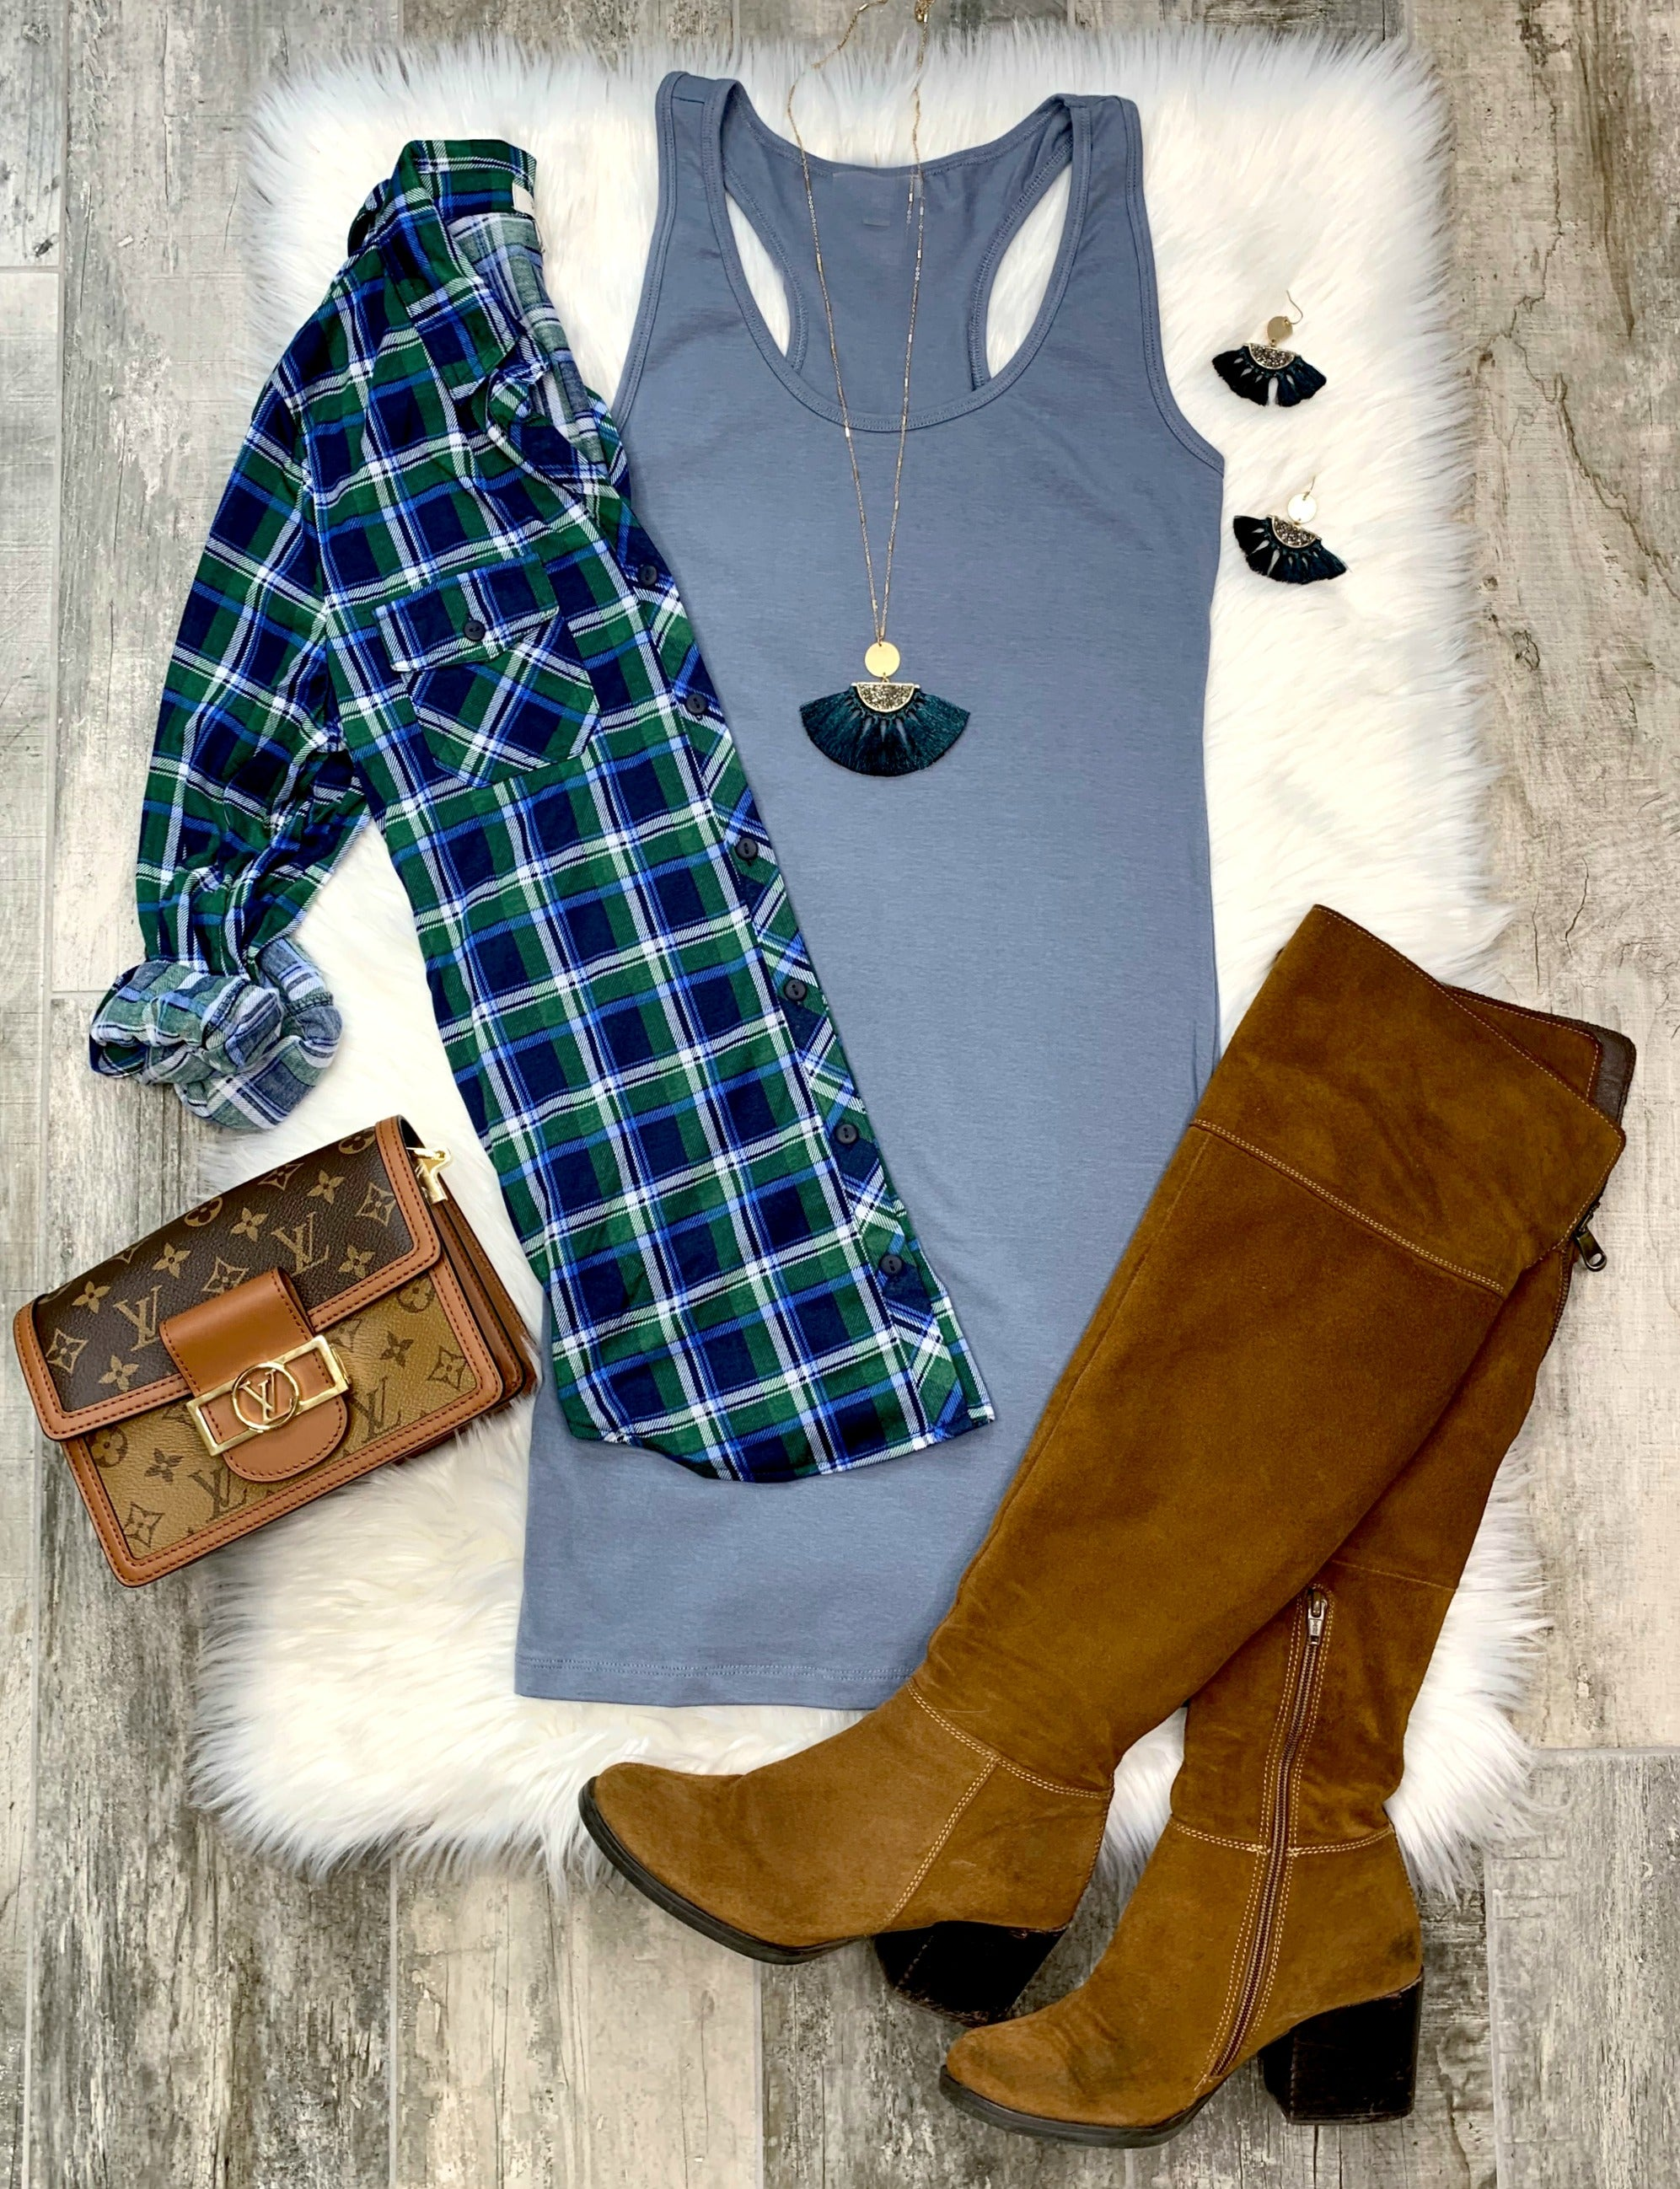 Penny Plaid Flannel Top - Green/Blue